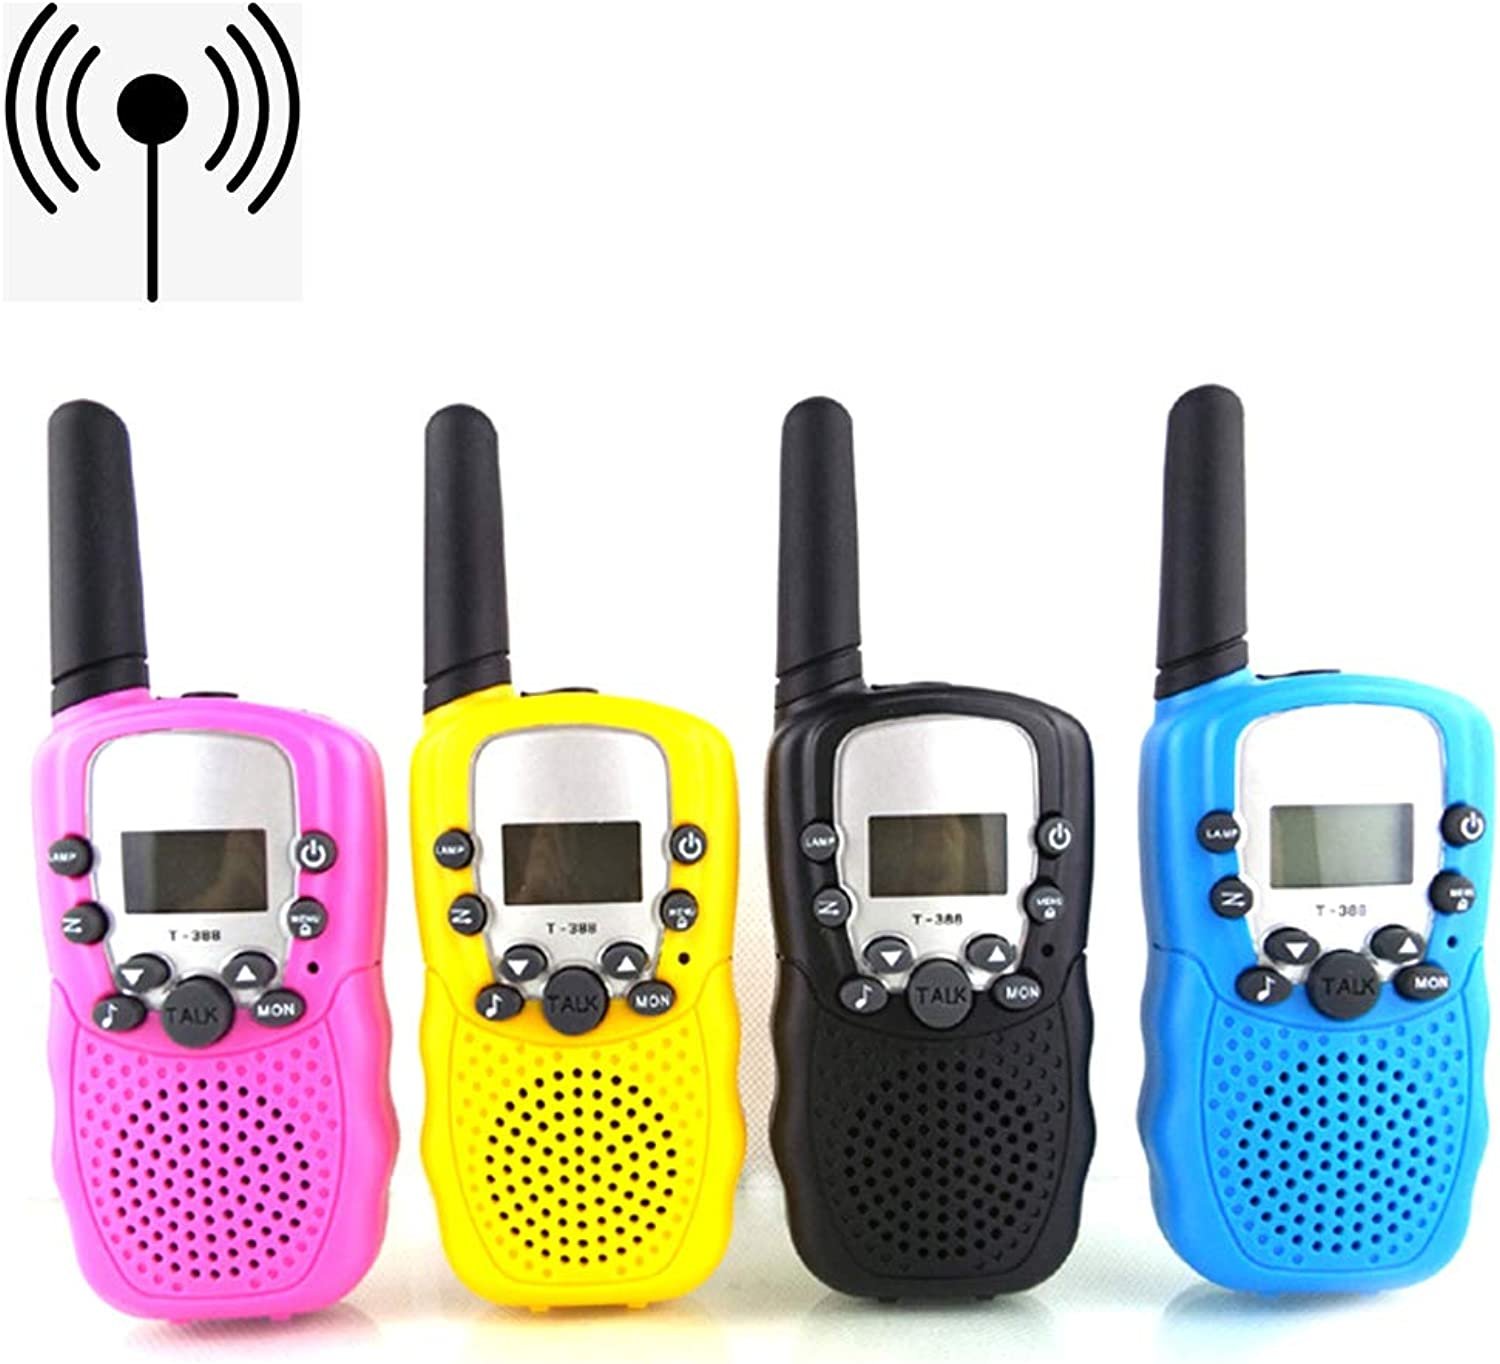 CX TECH Kids Walkie Talkie Kids Toys Wireless Talkie Rechargeable The Top Builtin LED Torch Radio Long Distance Range Walkie Other Outdoor Activities Girls Boys Gifts(walkie talkie4